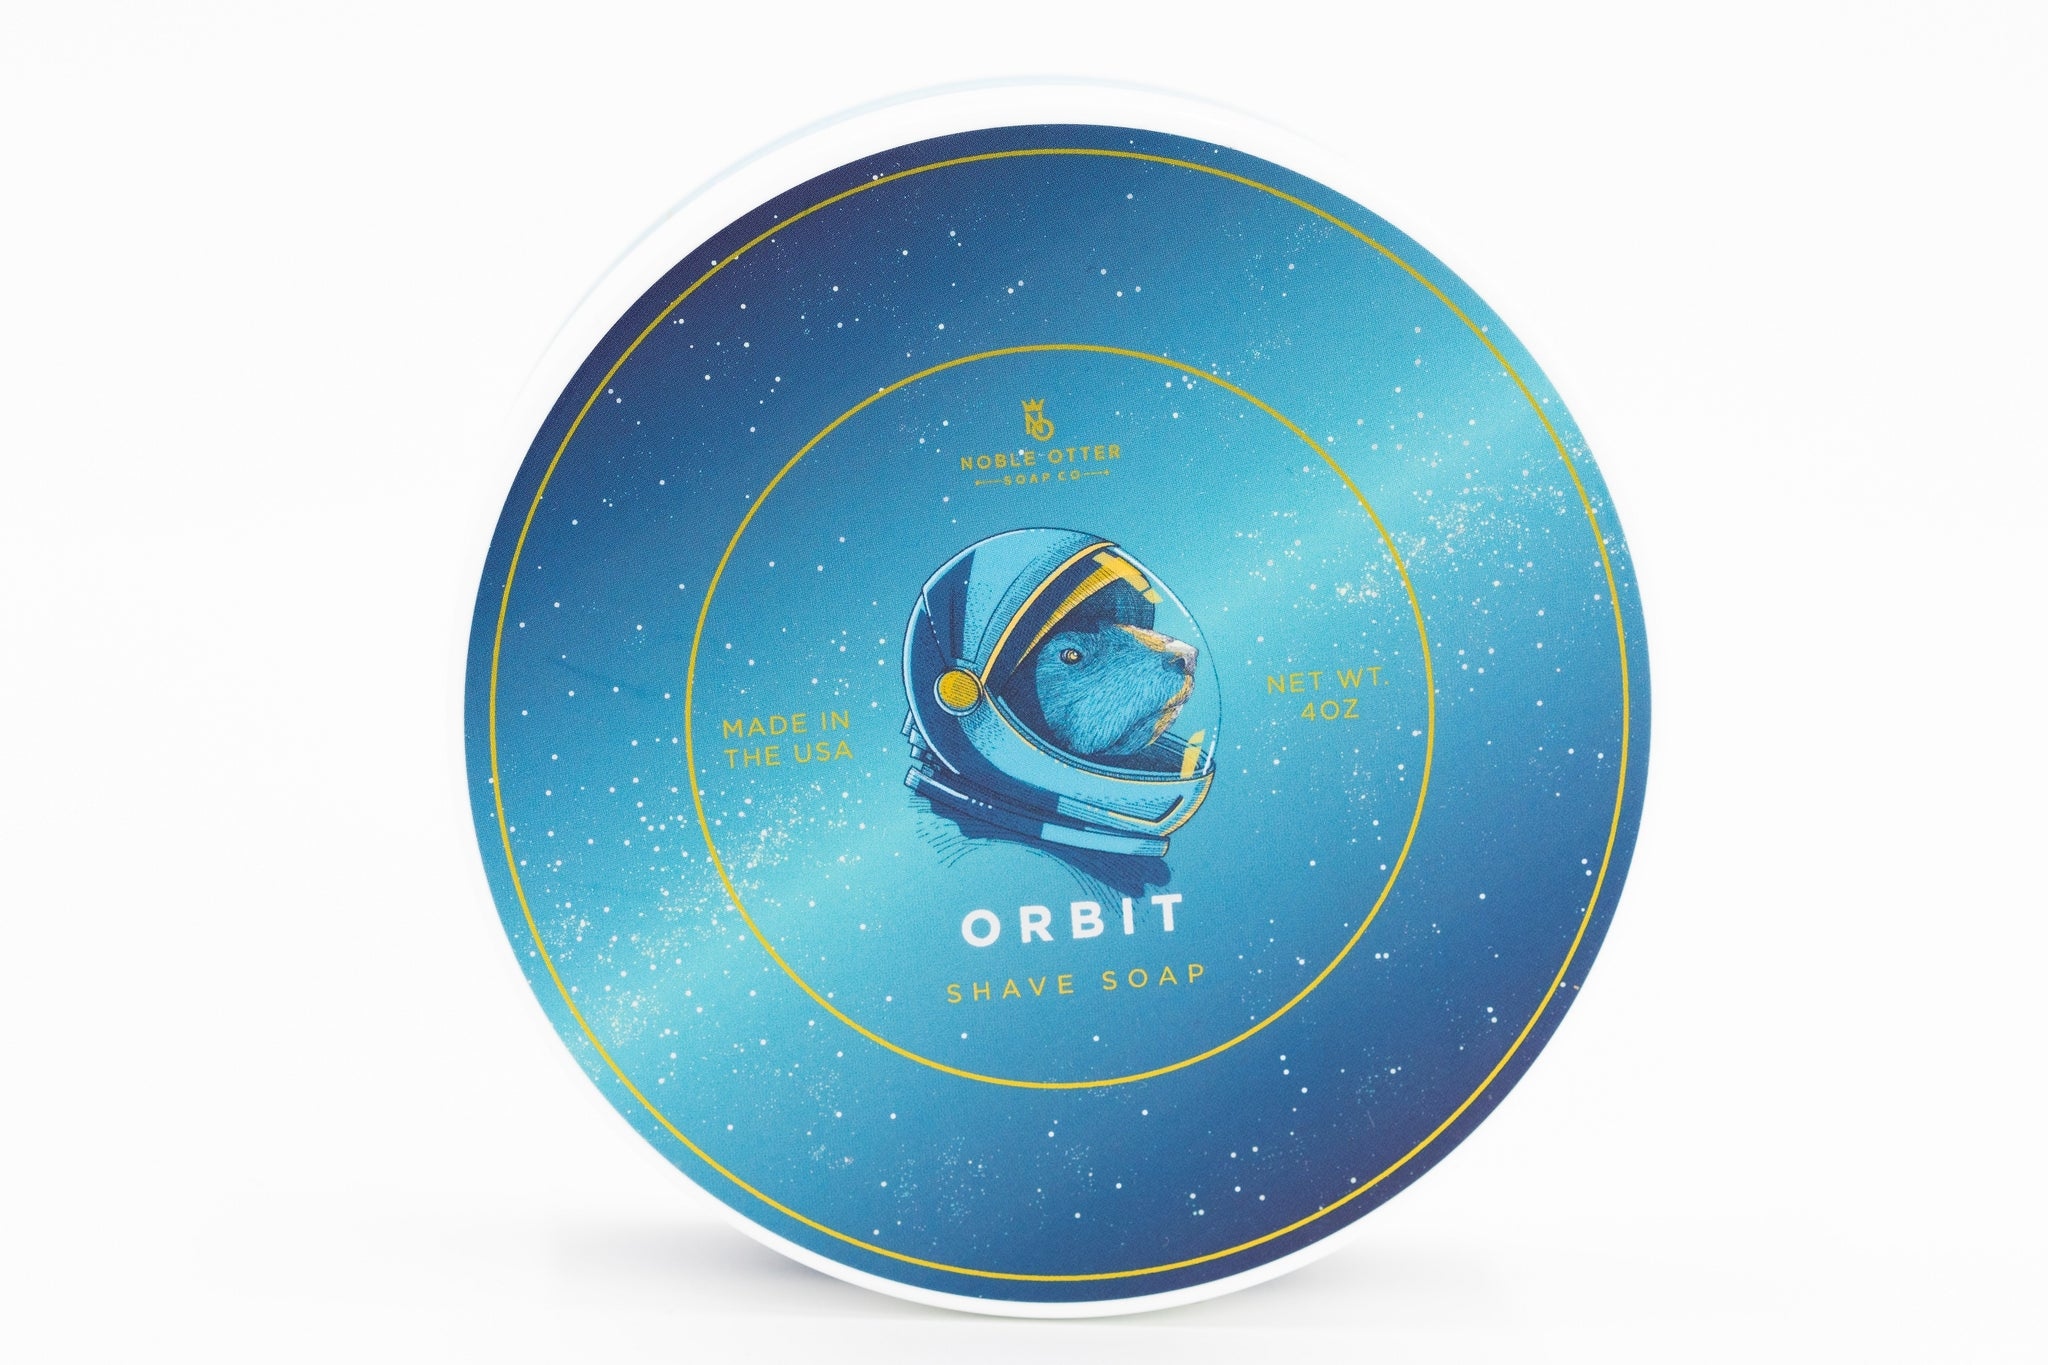 Noble Otter 'Orbit' Luxury Tallow Shaving Soap